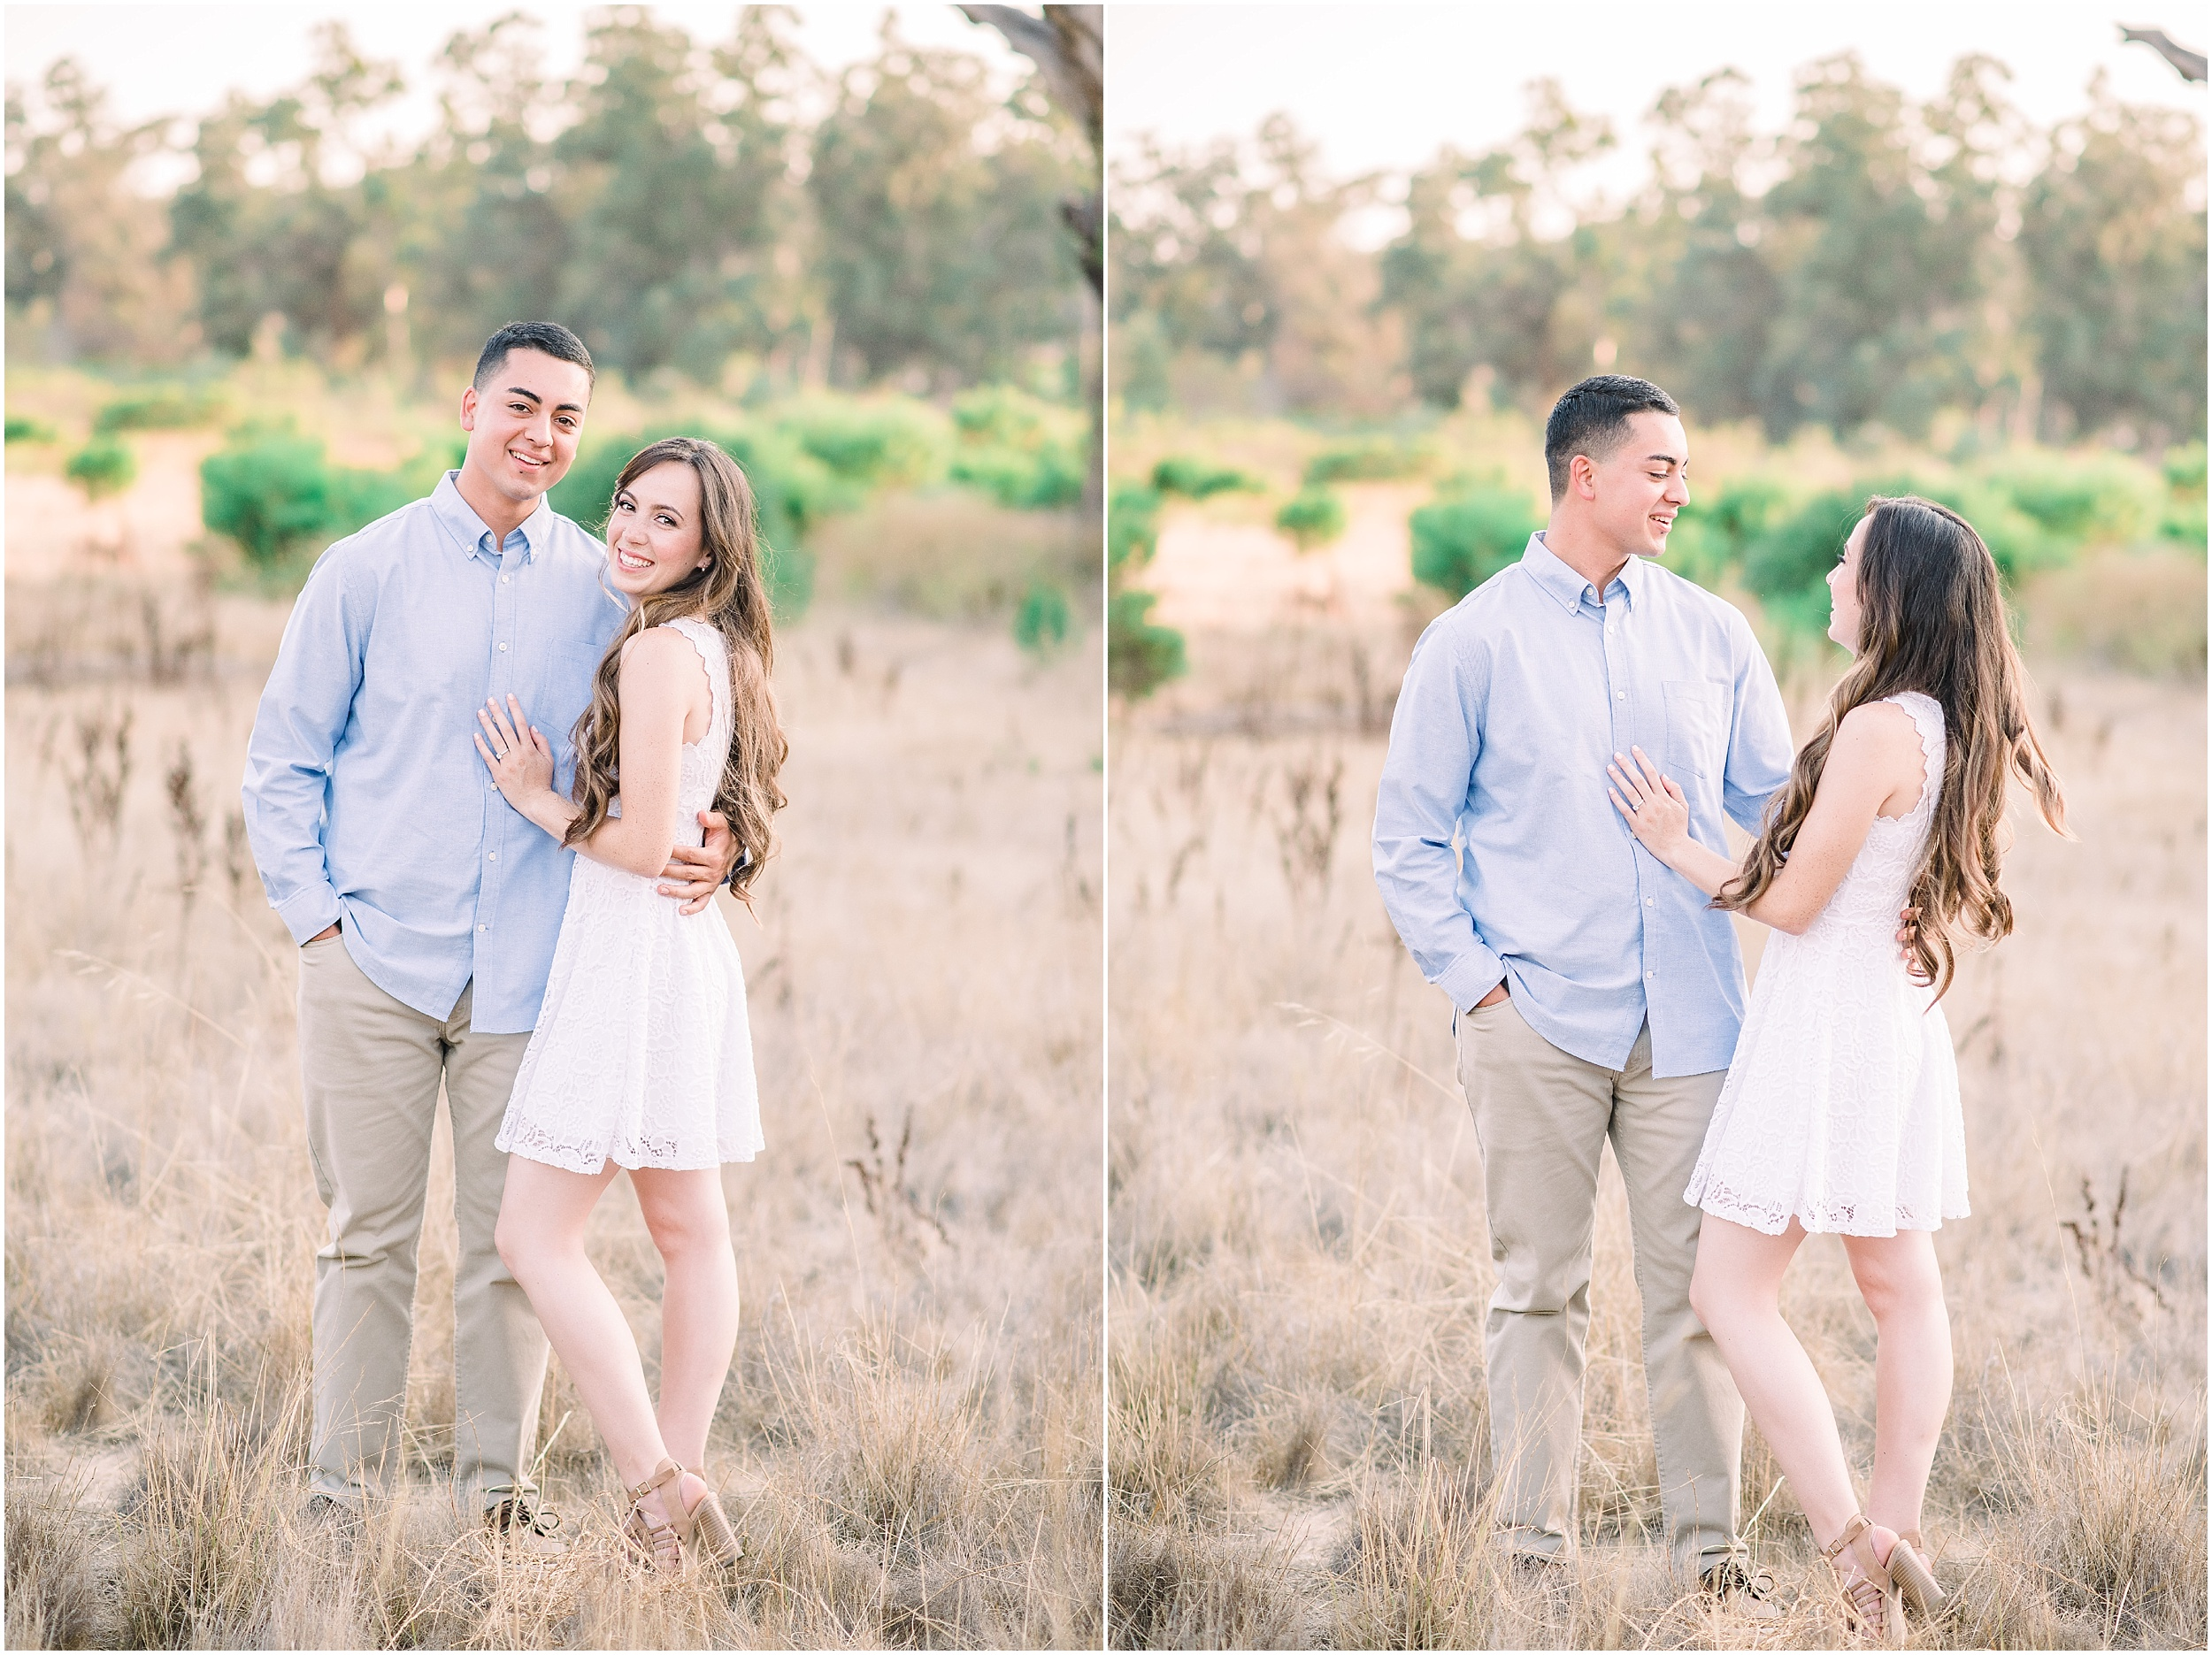 Valeria-Gonzalez-Photography-Wedding-and-Portrait-Photographer-Richmond-Virginia-Engagement-Session-in-Ojai-California_0018.jpg